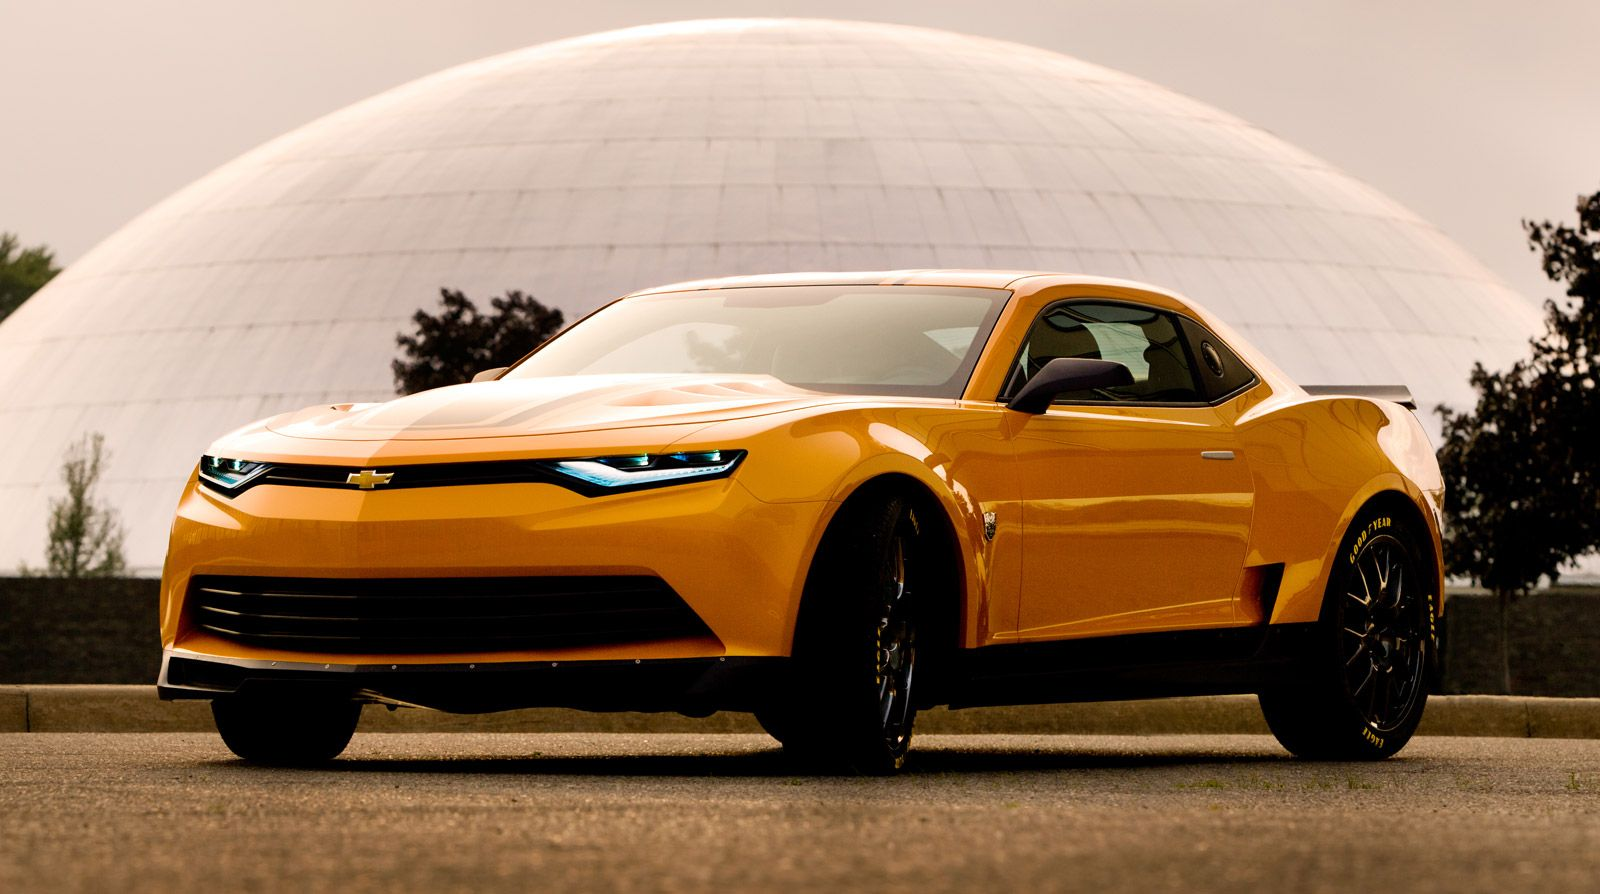 Michael bay has released two new images of transformers bumblebee car now a 2014 concept camaro